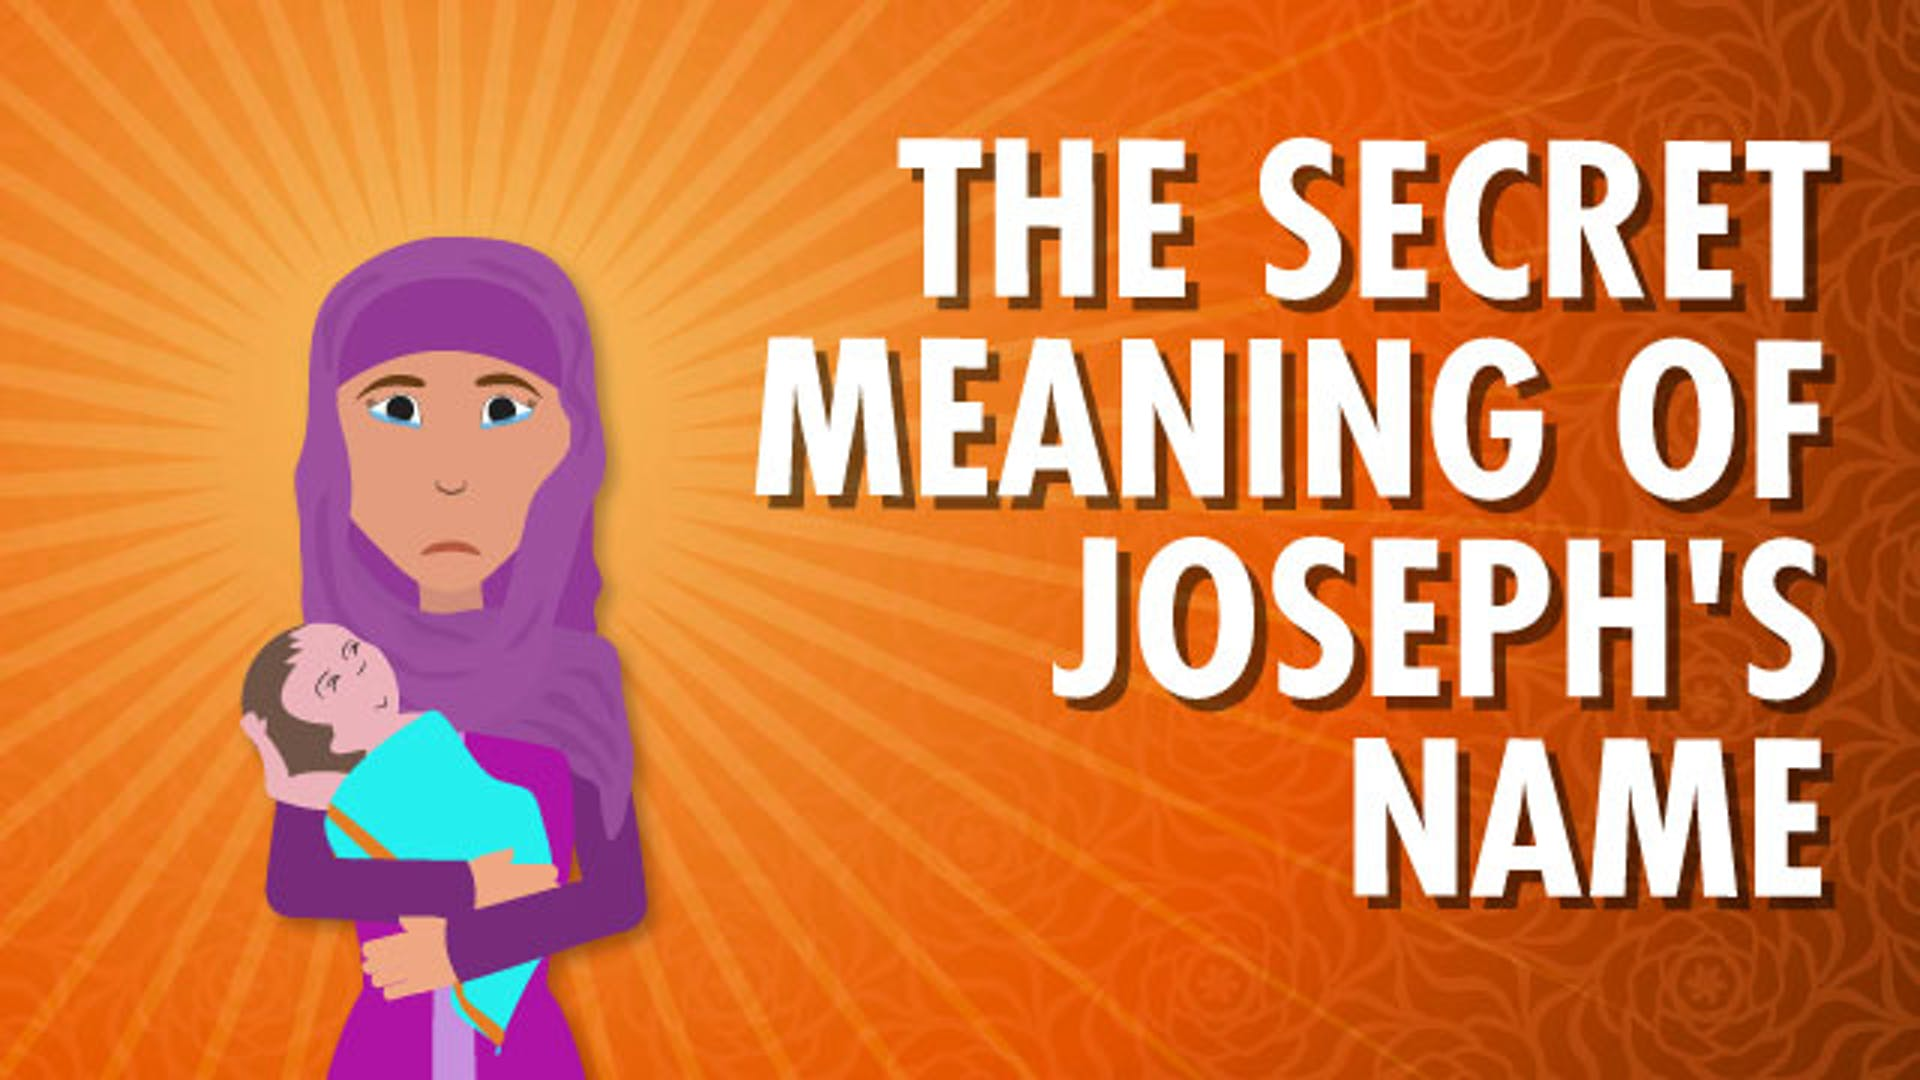 Meaning of Joseph name in Bible